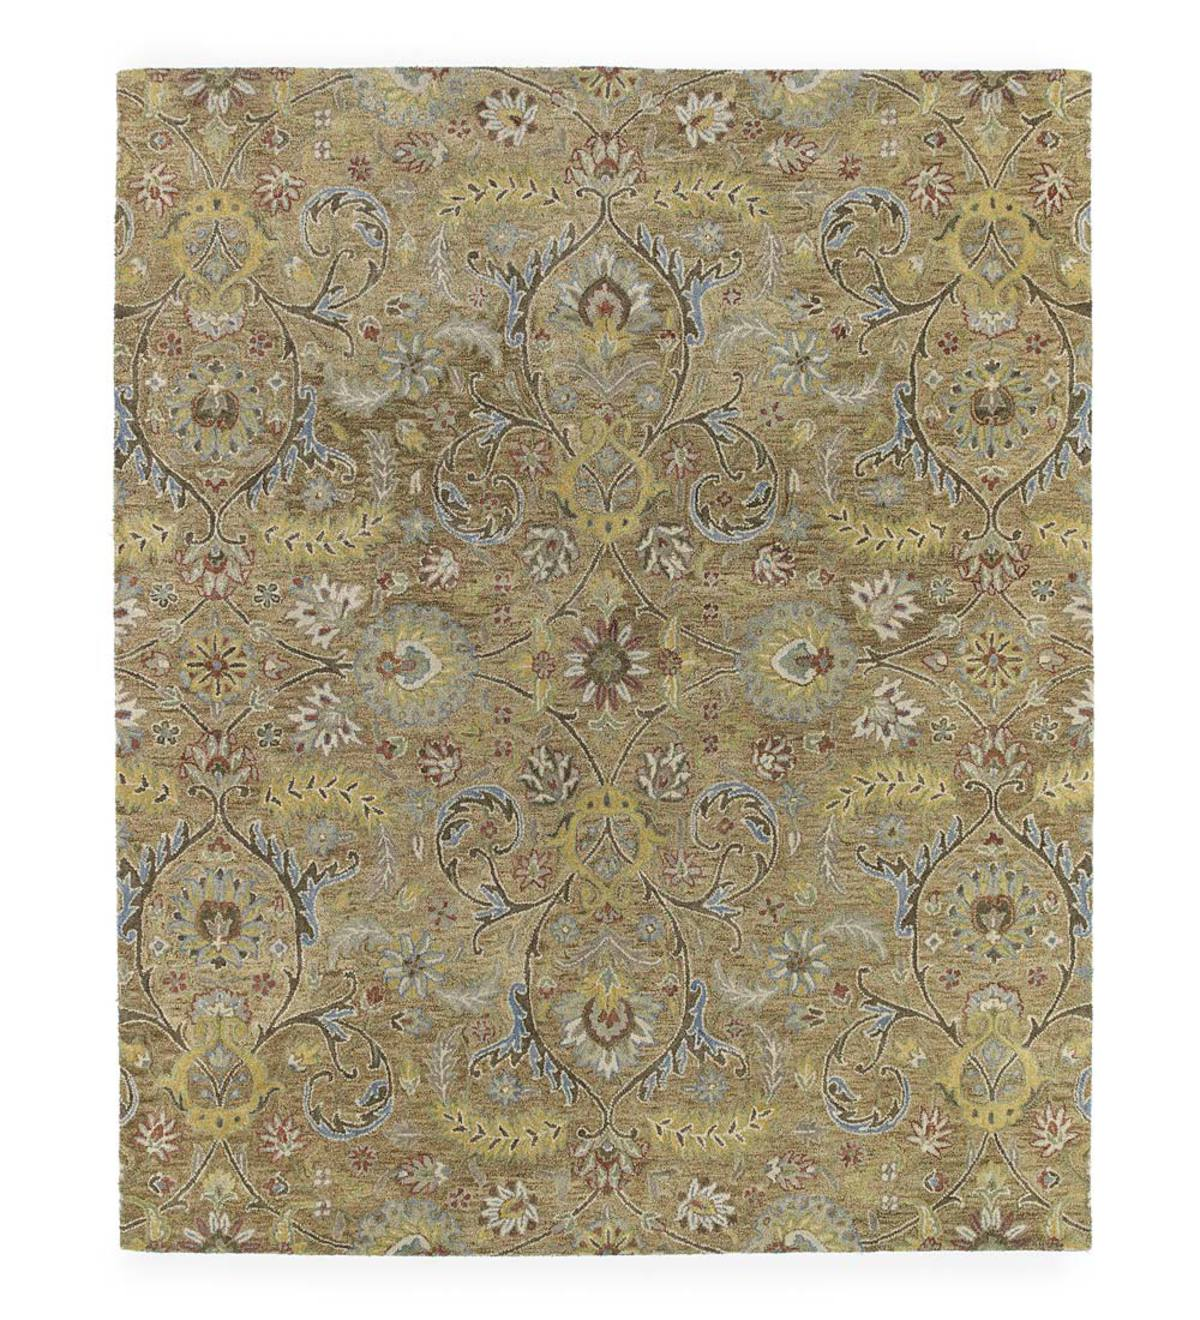 Meadow Fern Wool Rug, 2' x 3' - Gold